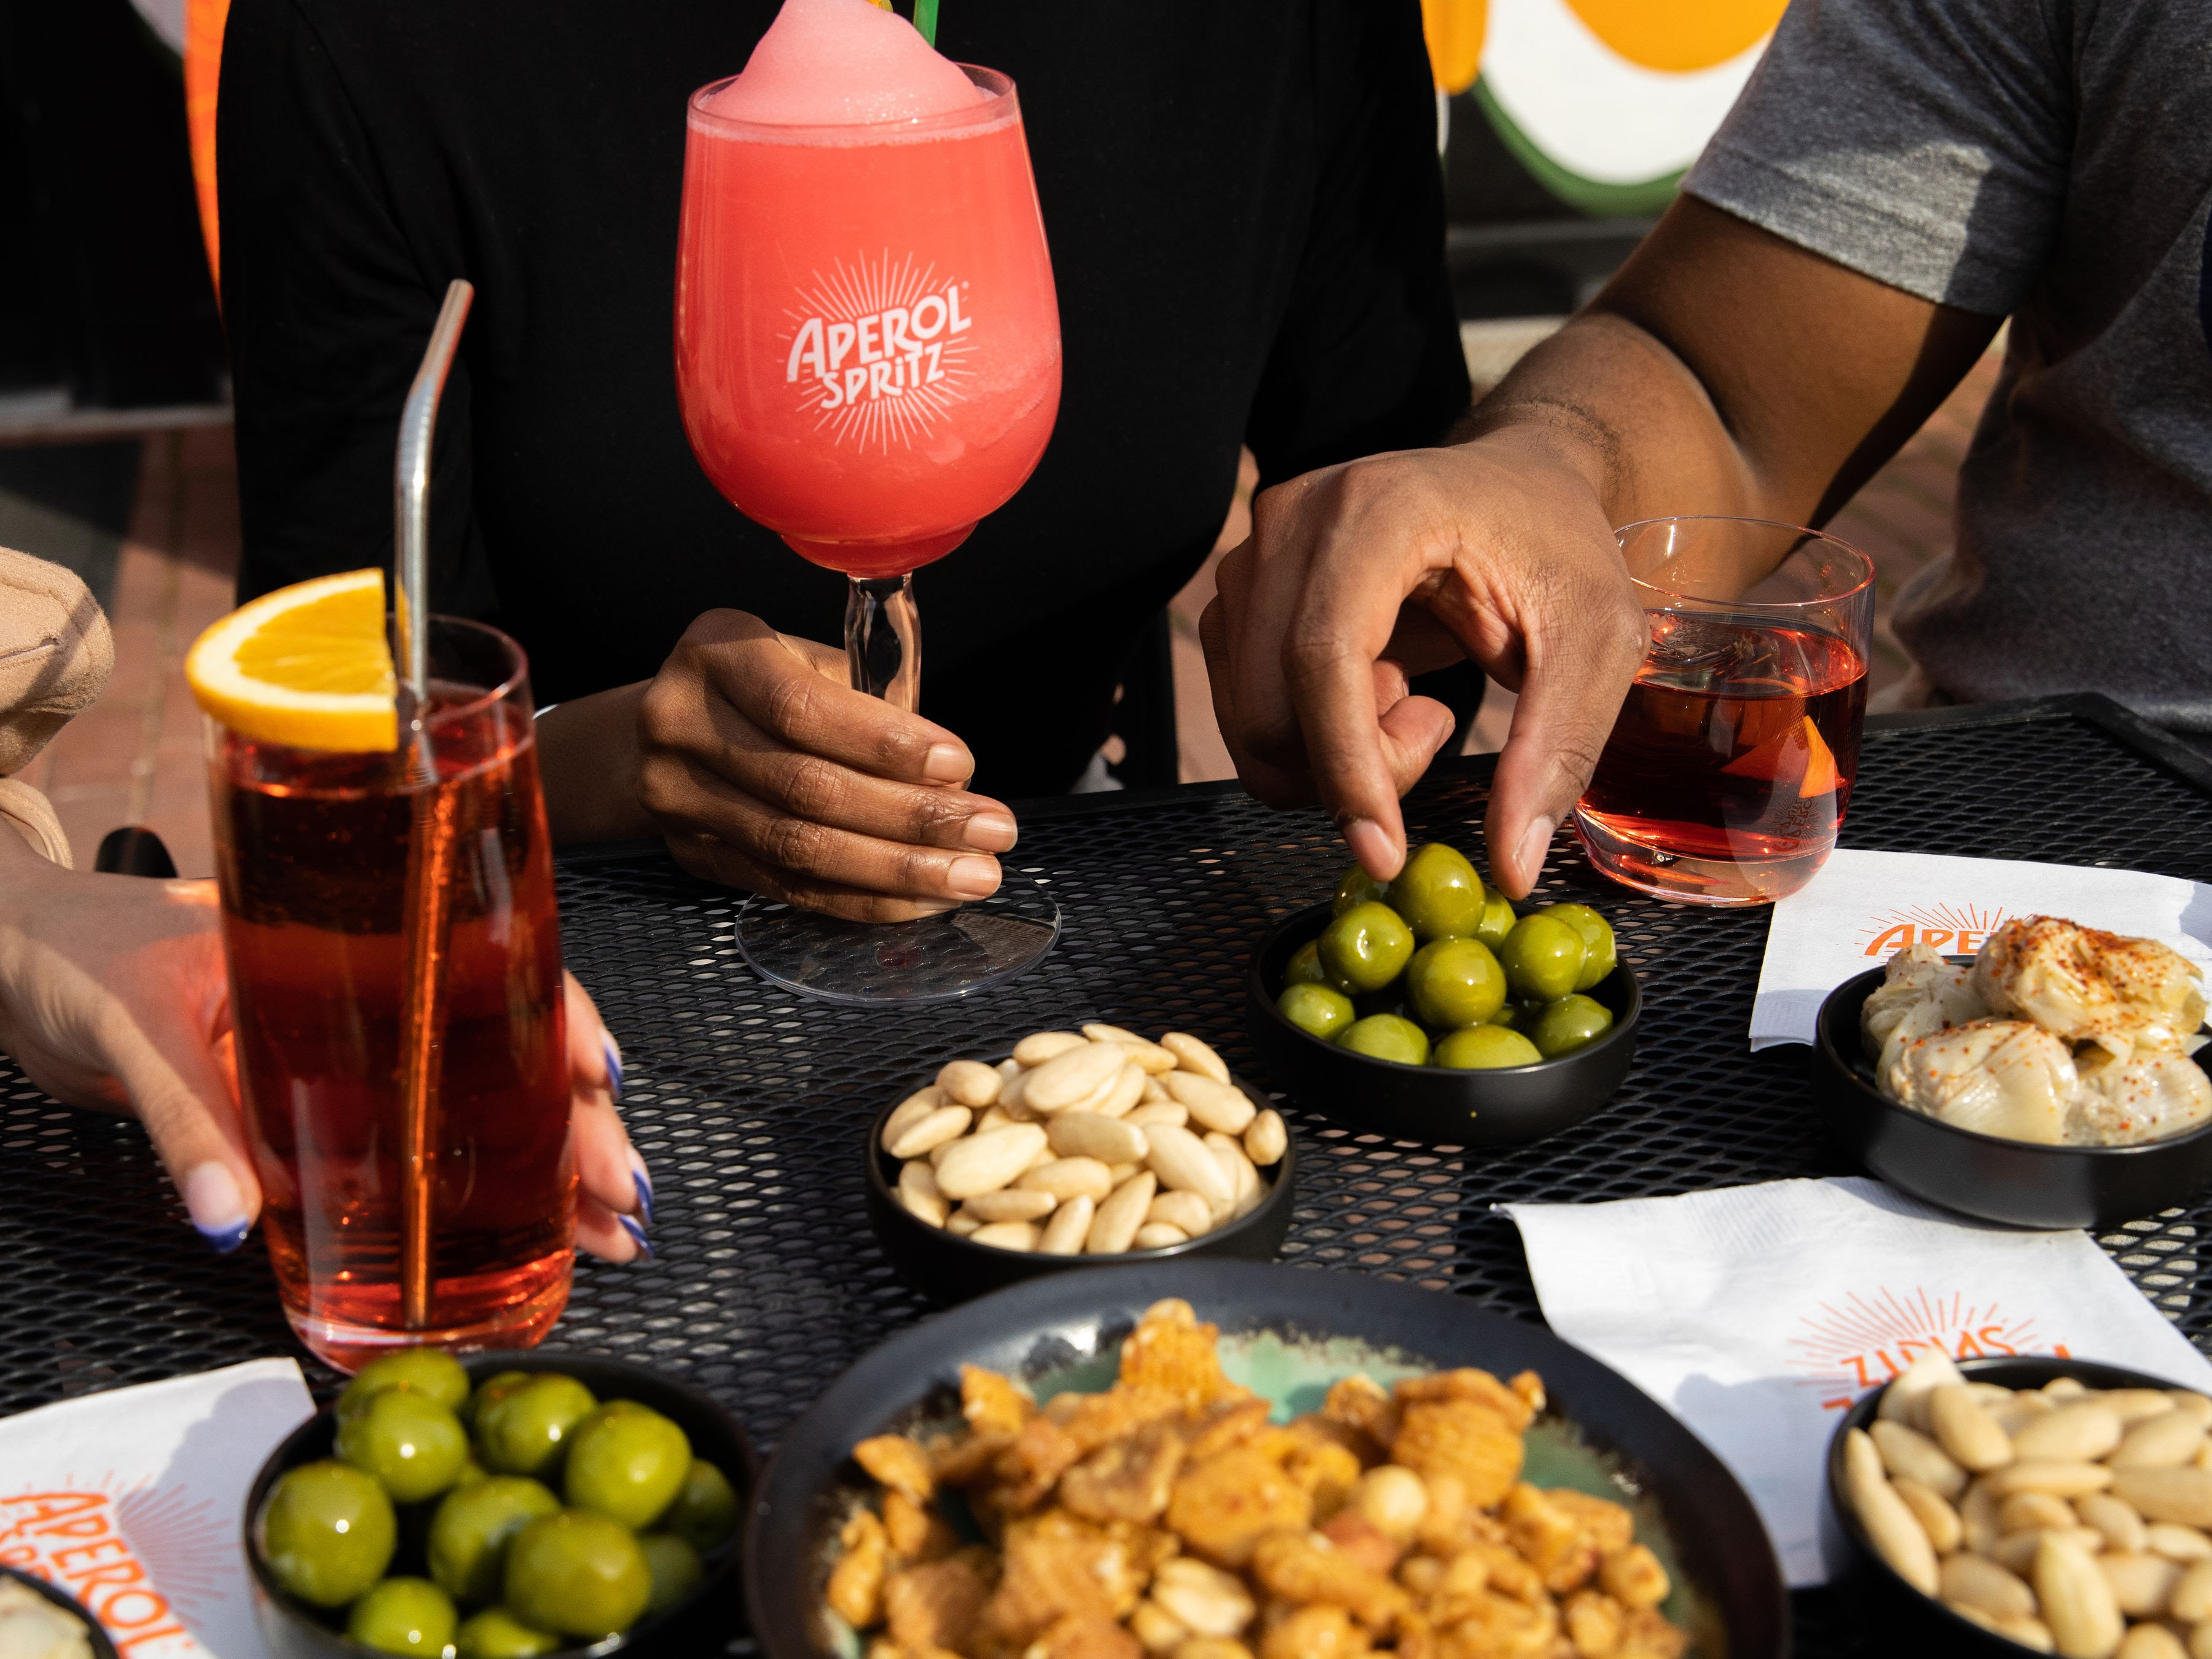 Aperol cocktails get paired with olives, marinated artichoke hearts, meatballs, and whipped gorgonzola.